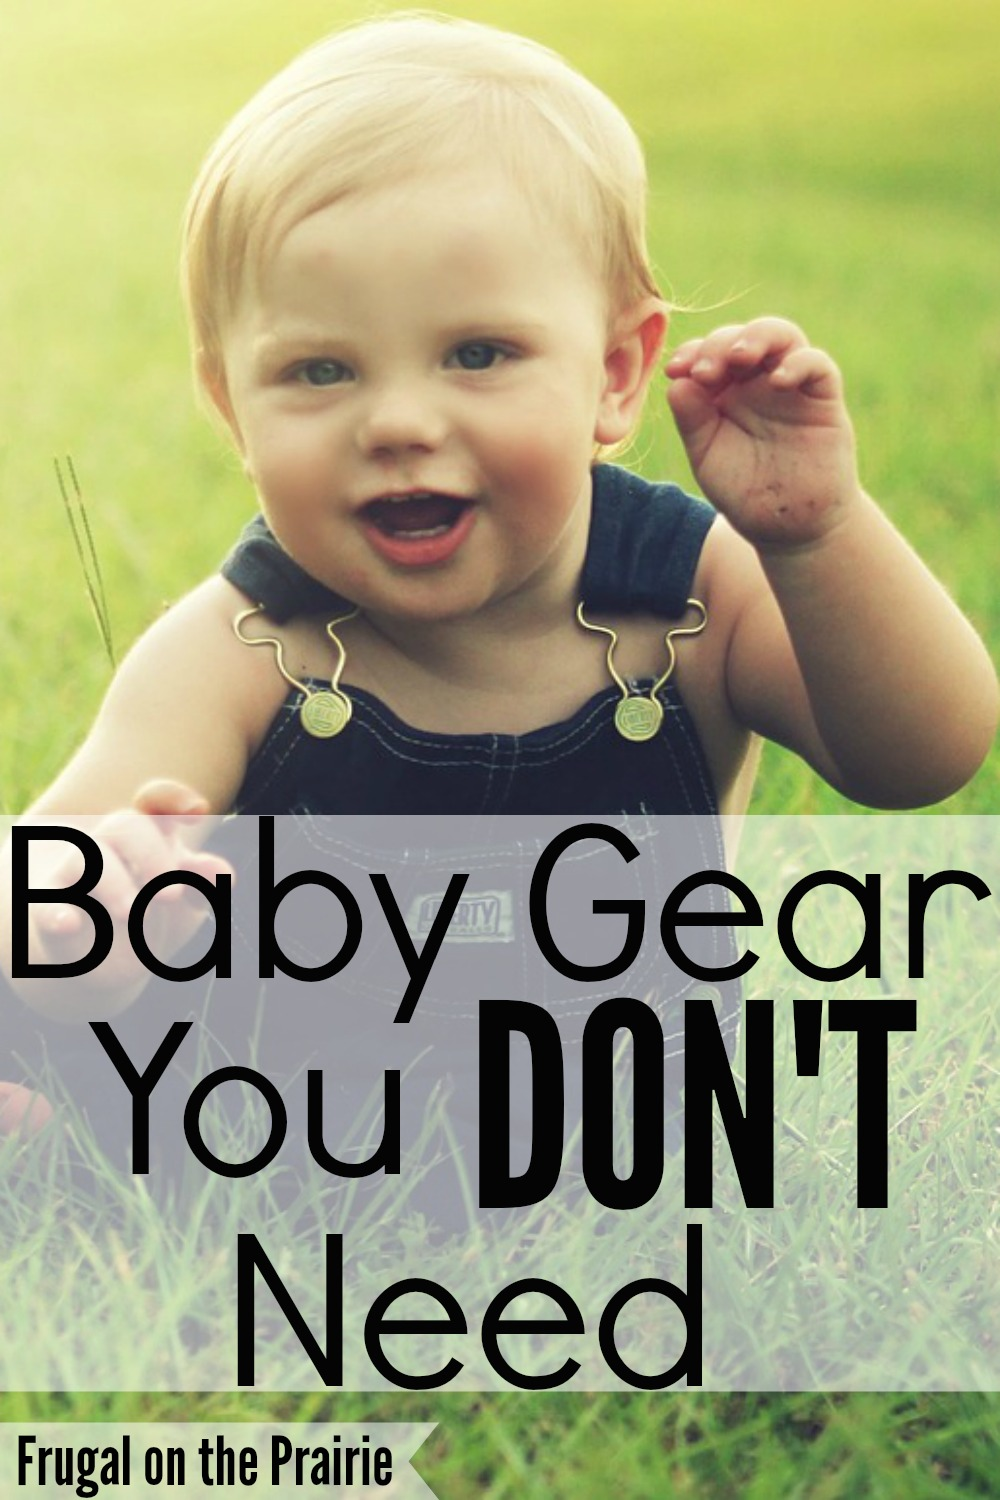 Here's a great list of baby gear you DON'T need! Save some extra money by skipping the overrated baby items.